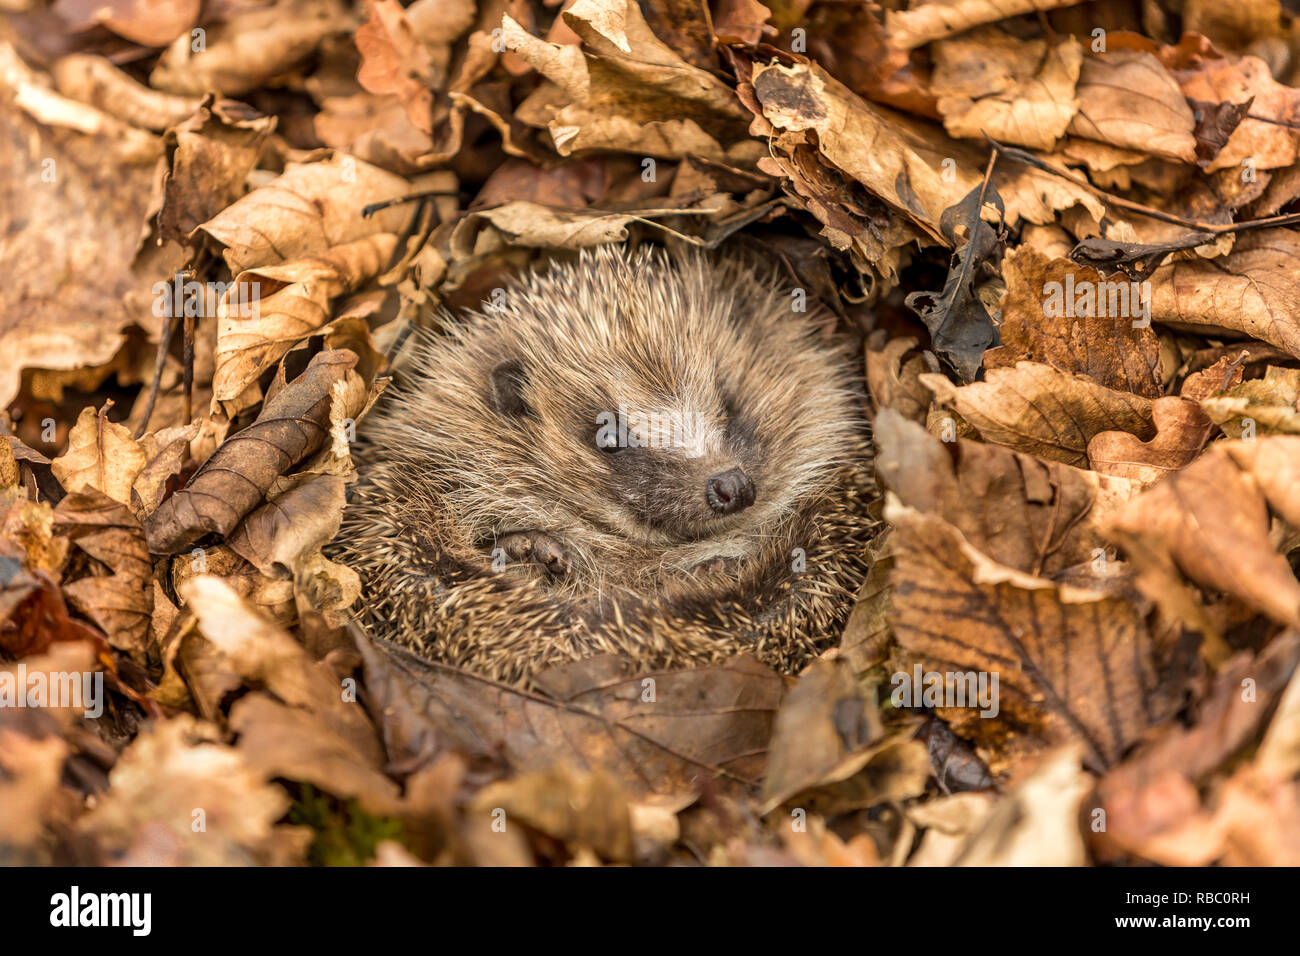 Hibernating hedgehog (Scientific name: Erinaceus europaeus). Wild, native, European hedgehog, curled into a ball and hibernating in Autumn leaves - Stock Image